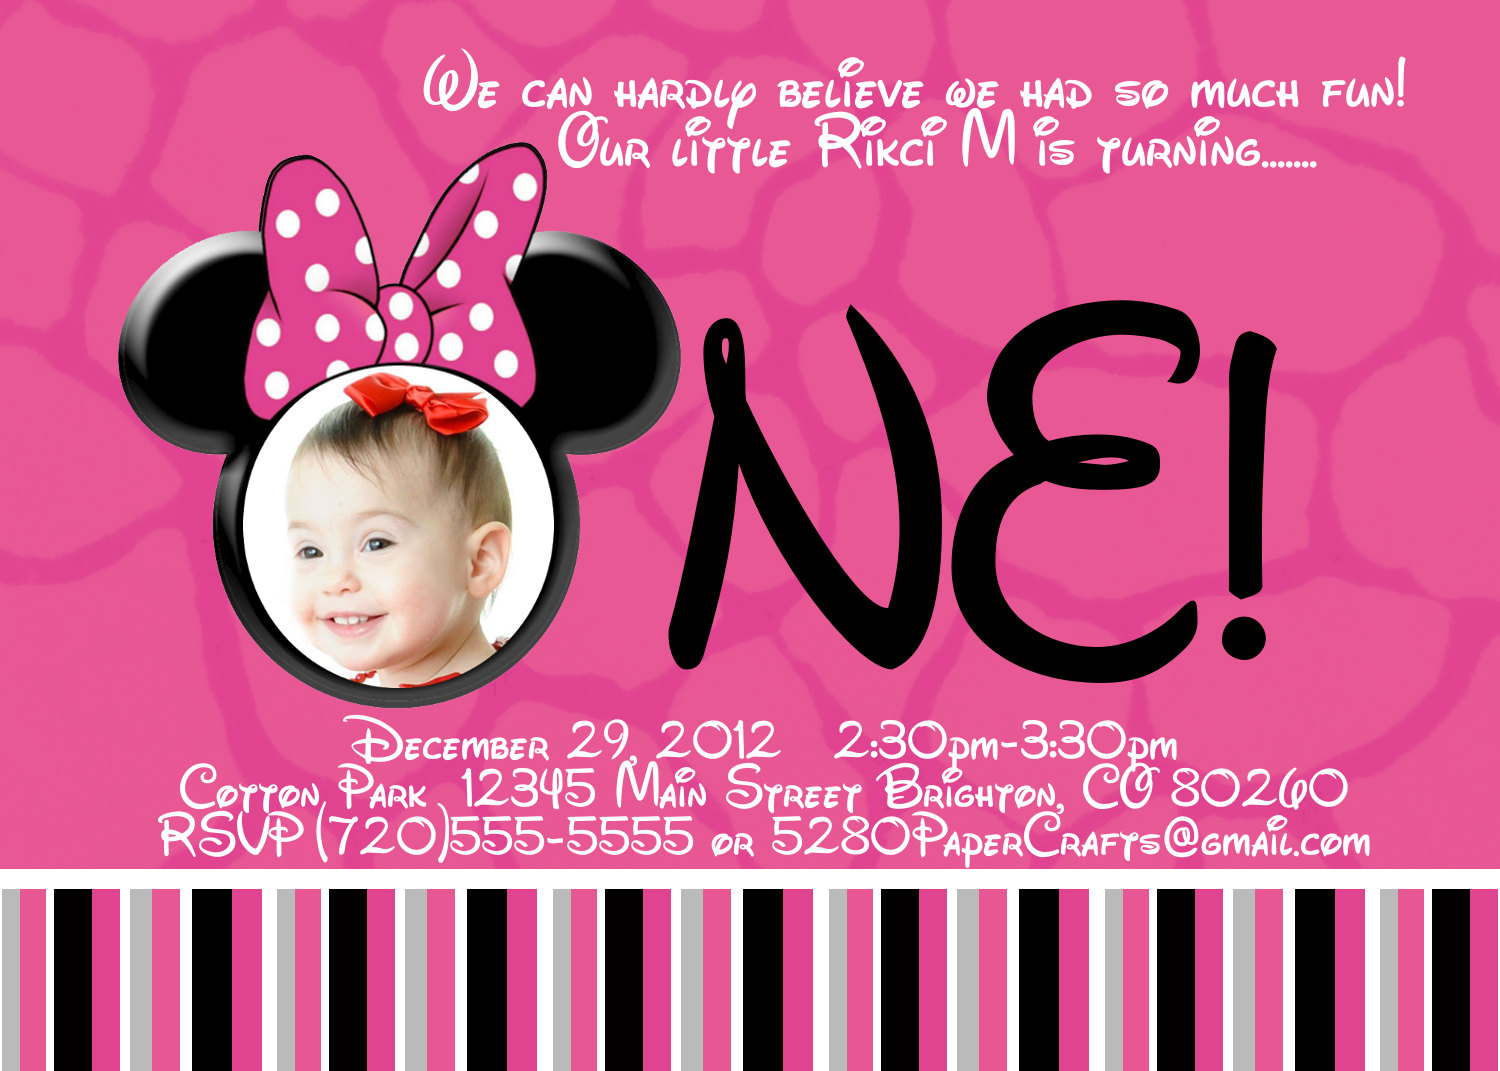 Mickey Mouse Themed Birthday Party Invitation Wording 860c8ddc5d72c962a6947387c3e1eae6